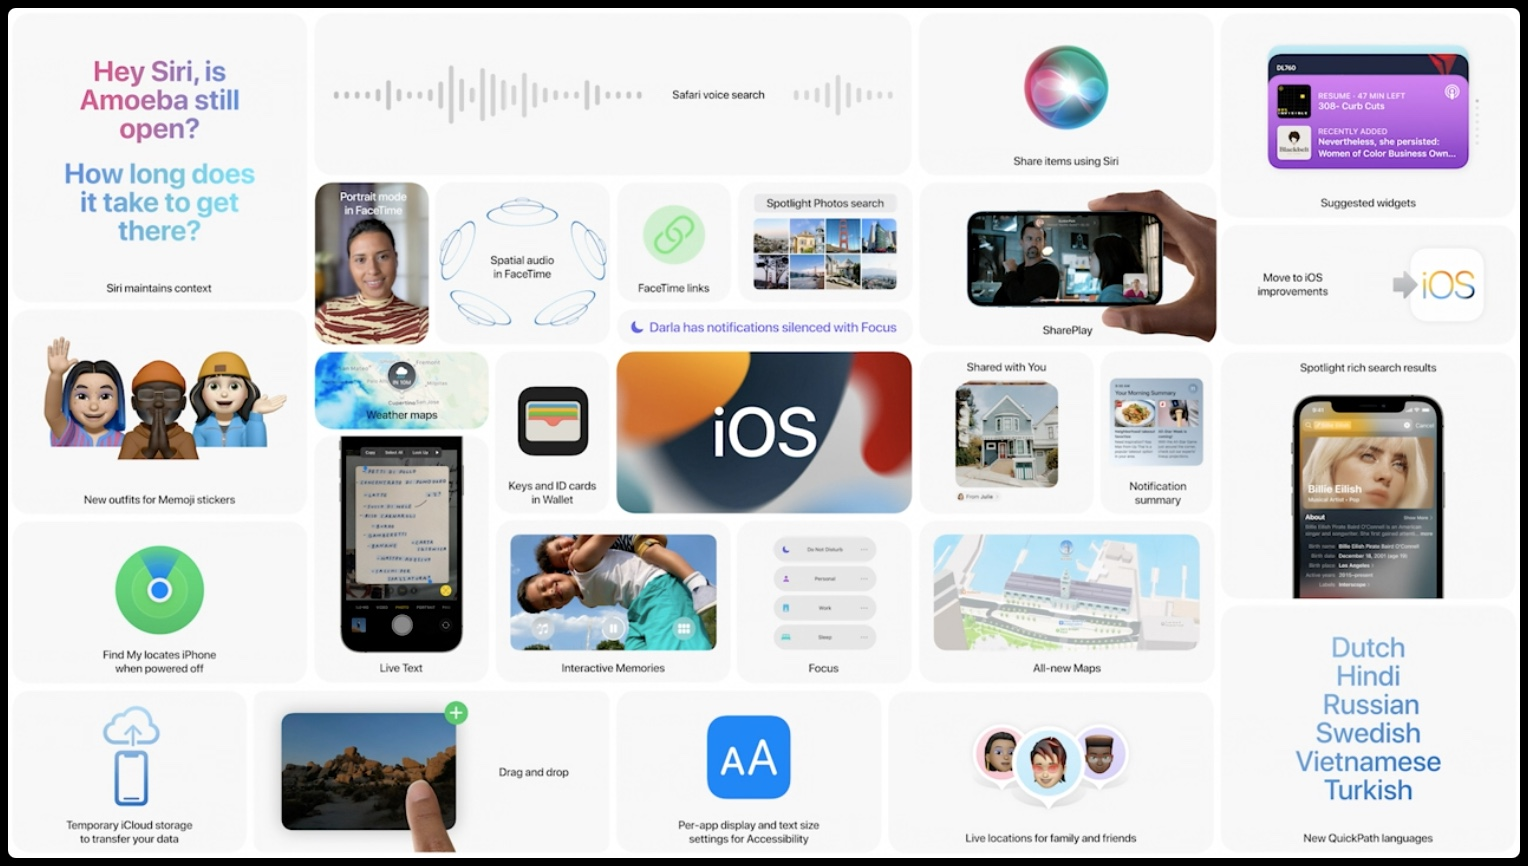 Apple's WWDC21 slide listing the most important new features of iOS 15